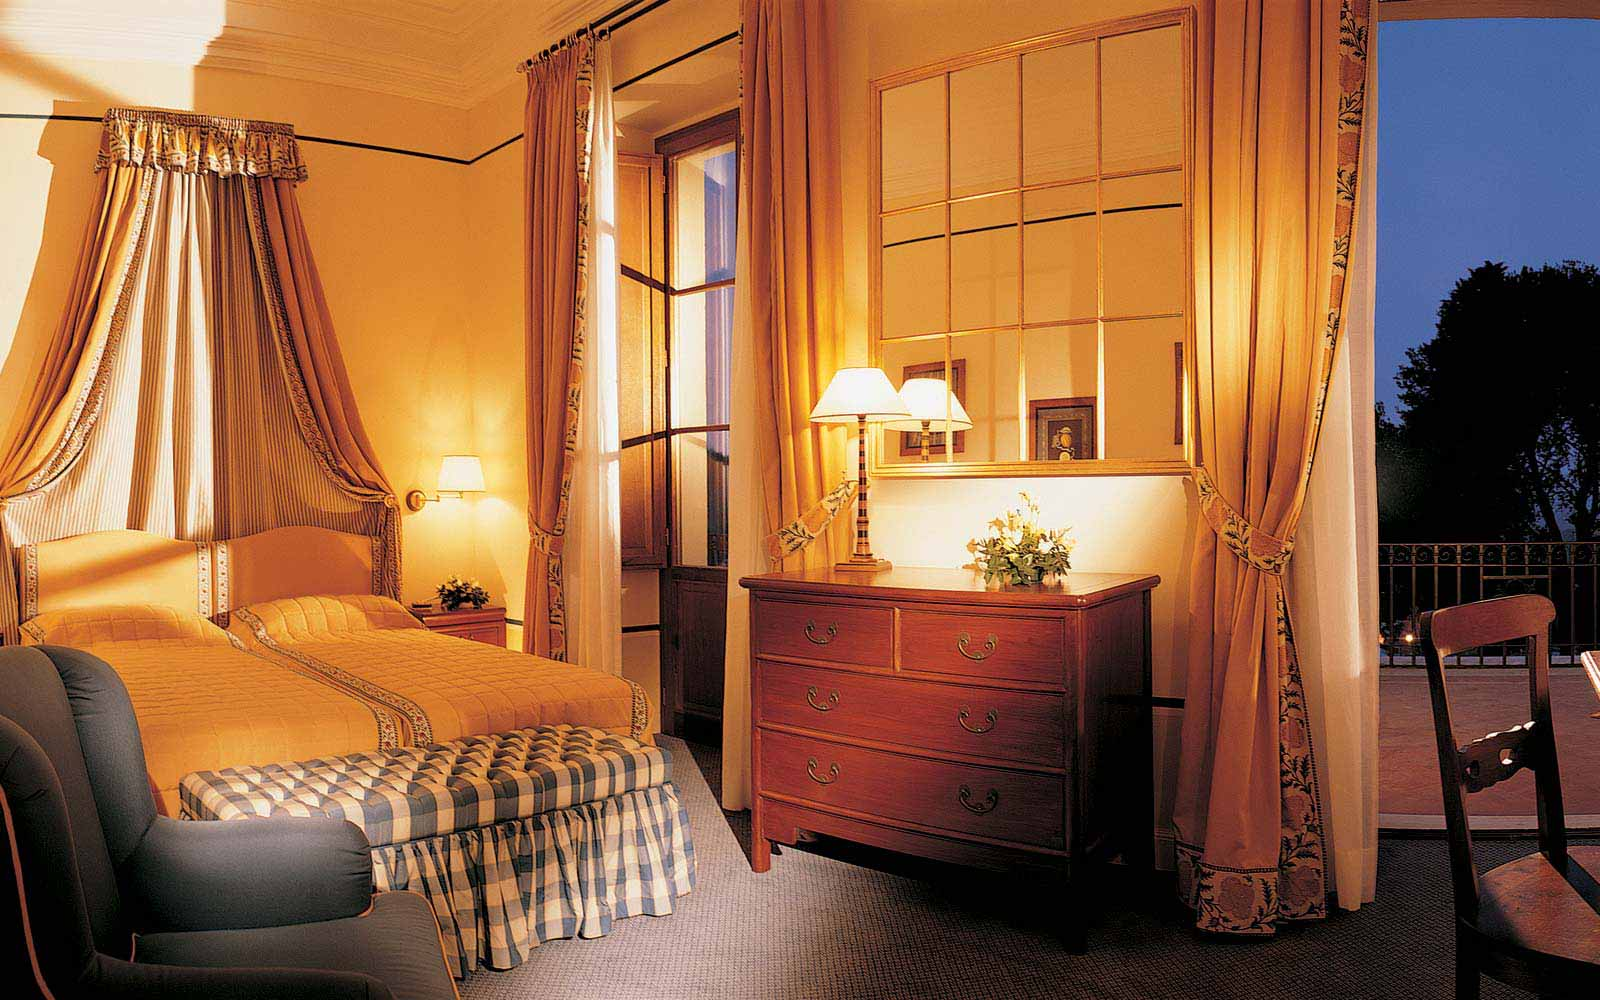 Deluxe room at the Fonteverde